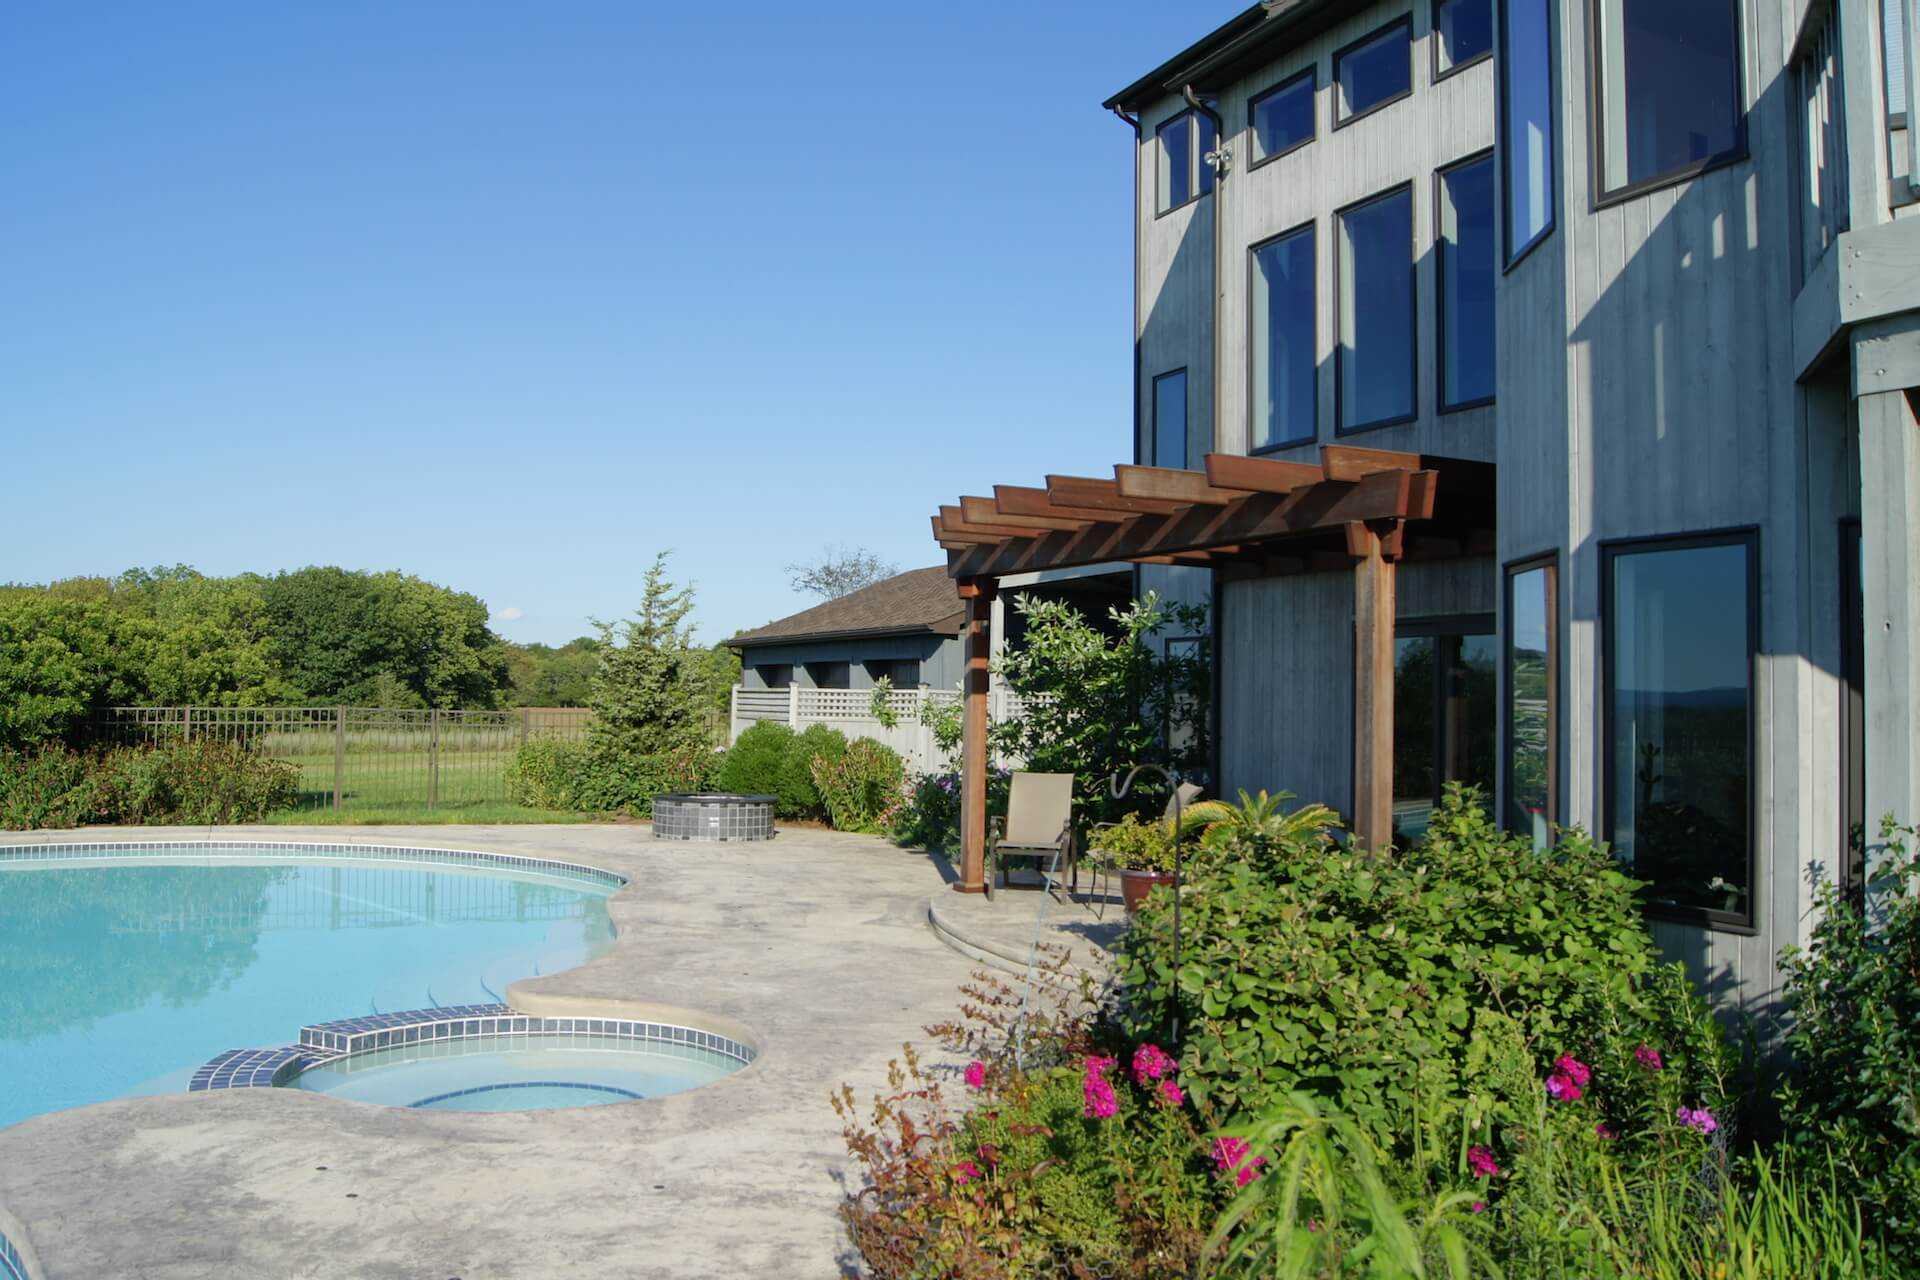 Pipersville Meadow Residence catharine ann farnen landscape architecting